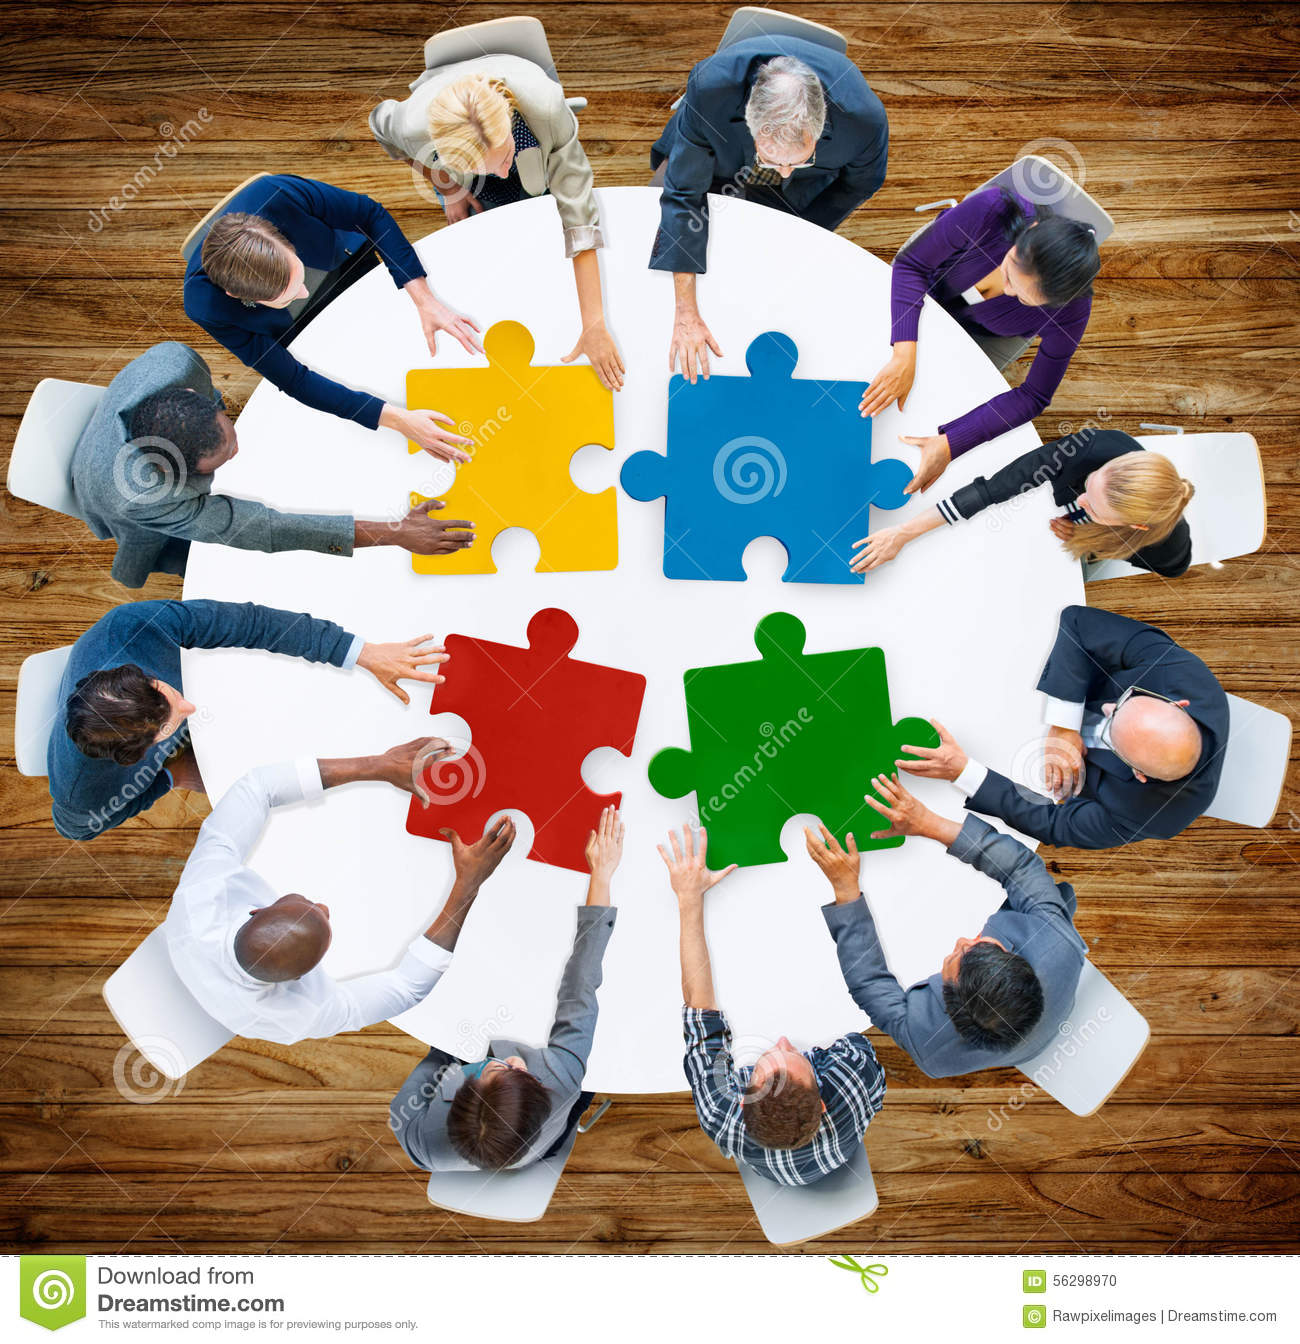 Collaborative leadership: moving from top-down to team